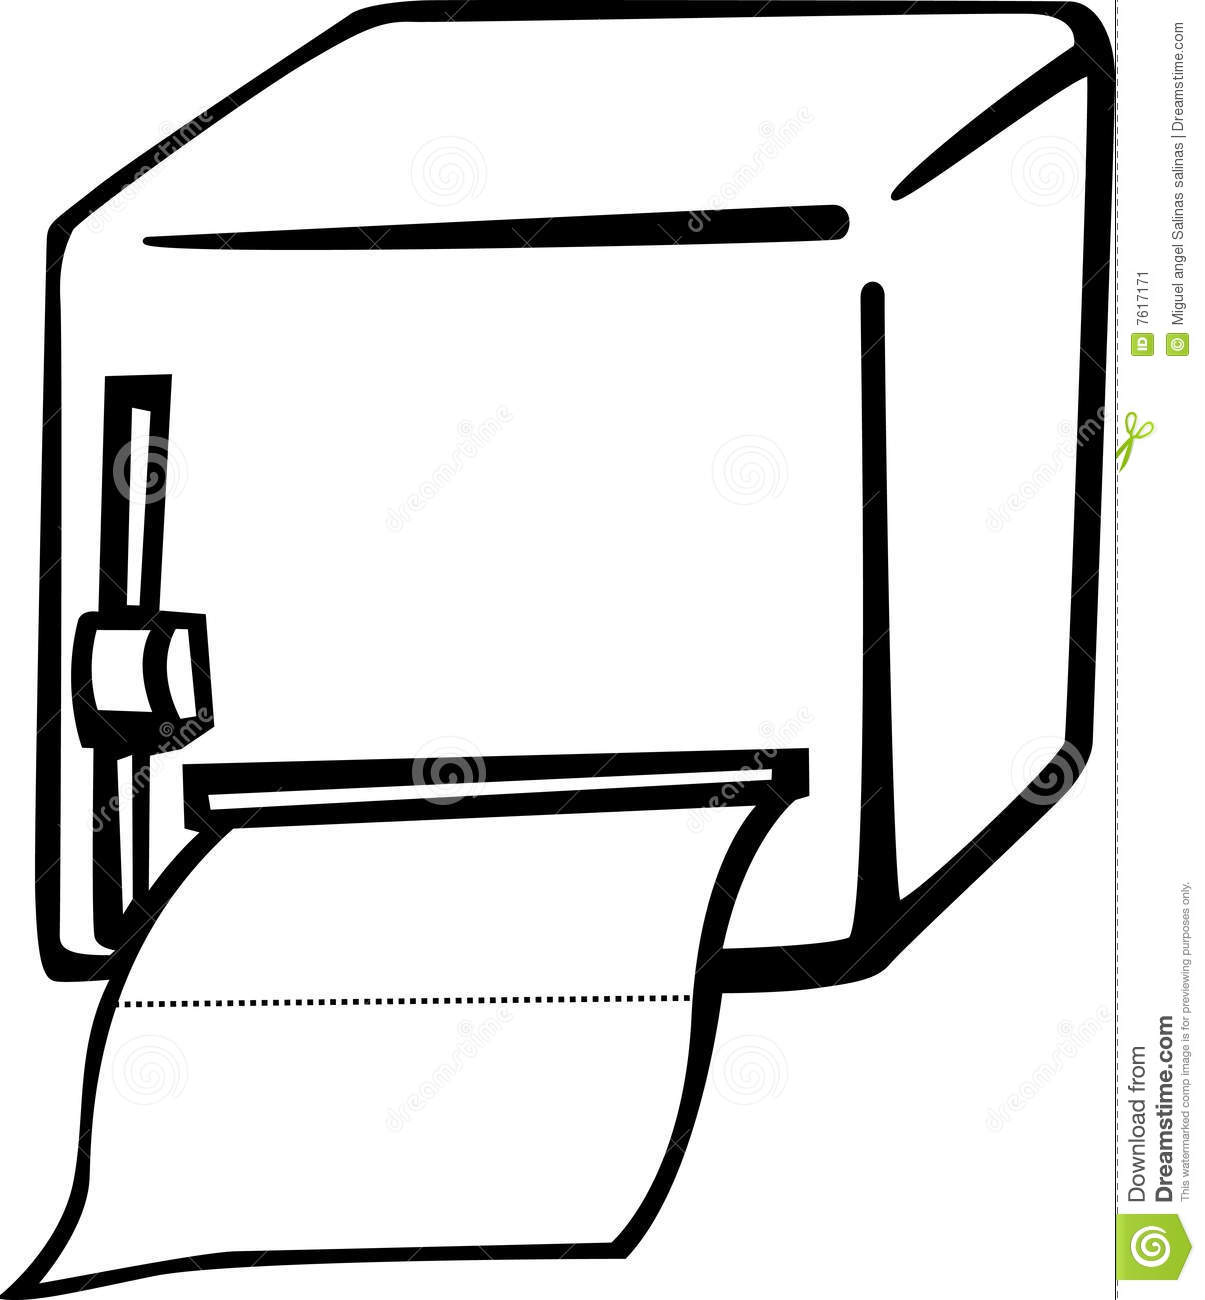 Dispenser Clipart